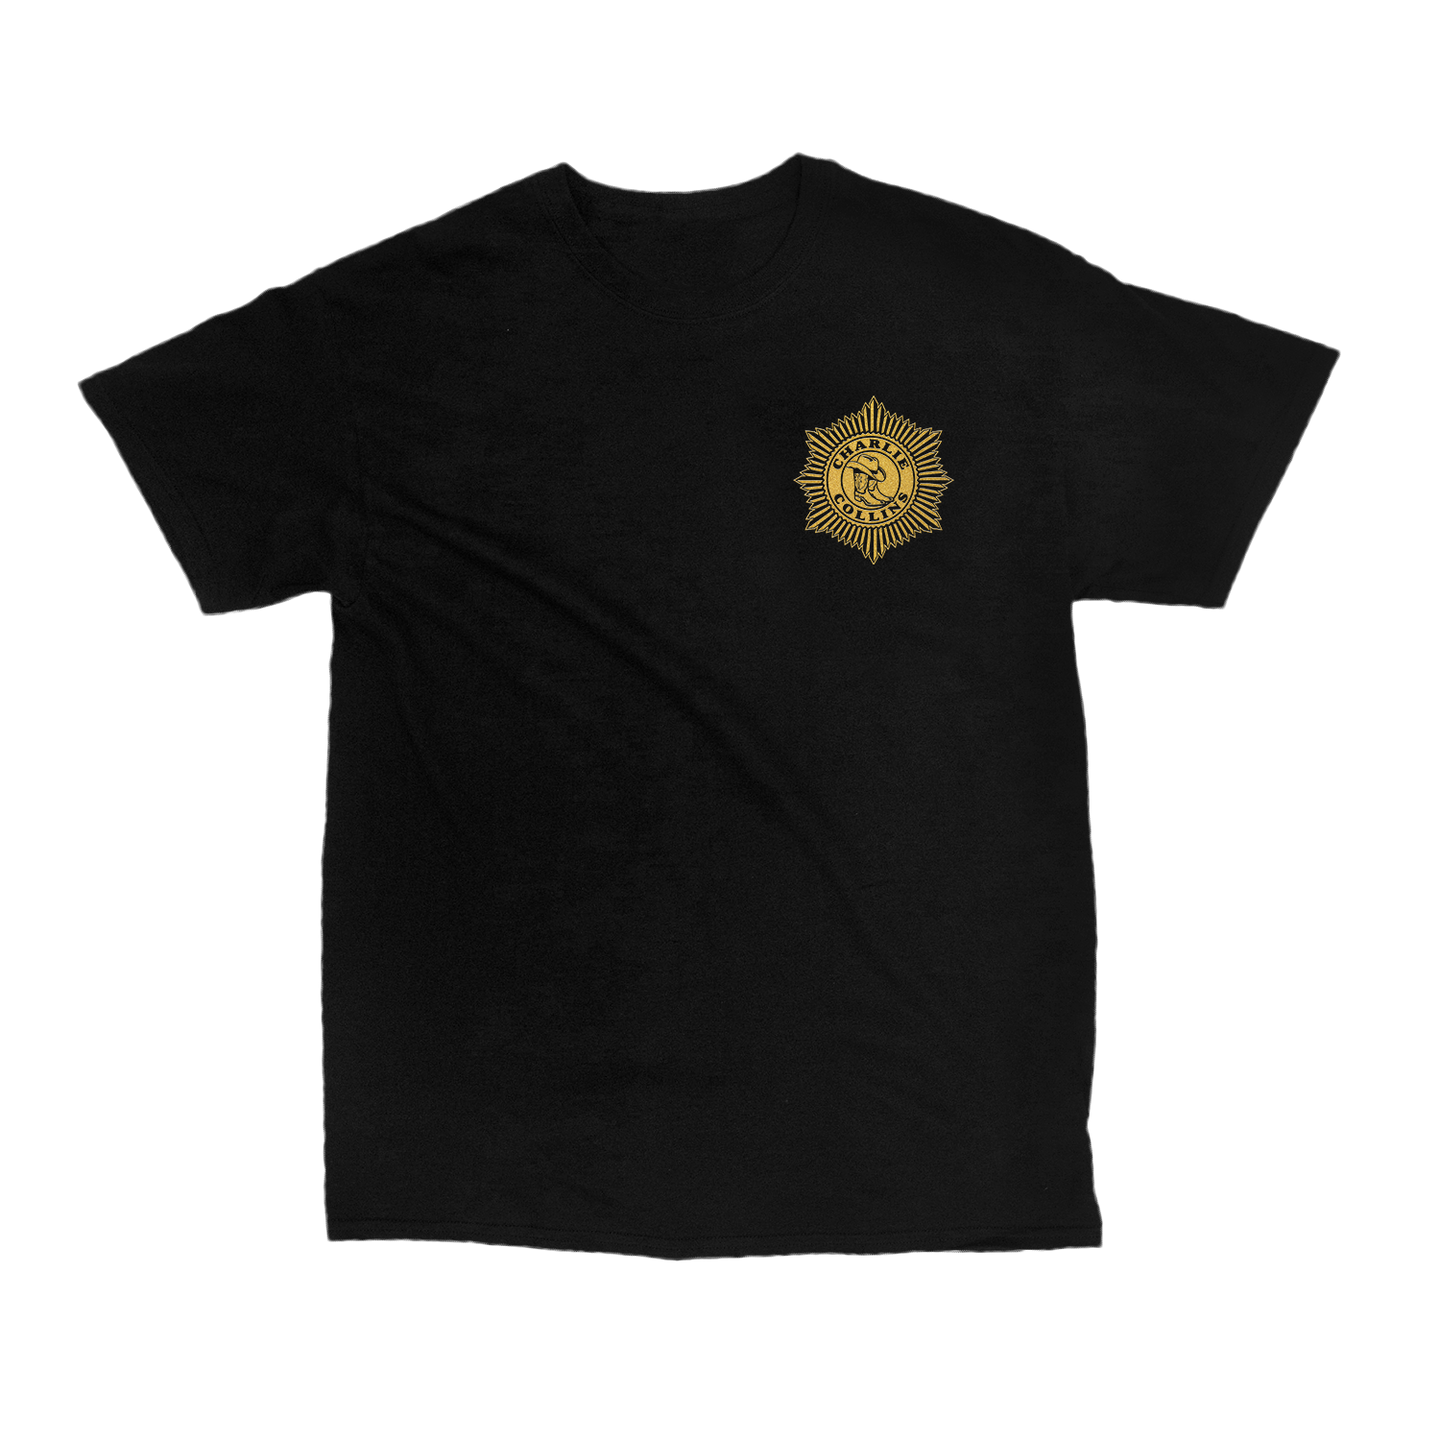 BLACK BADGE TEE